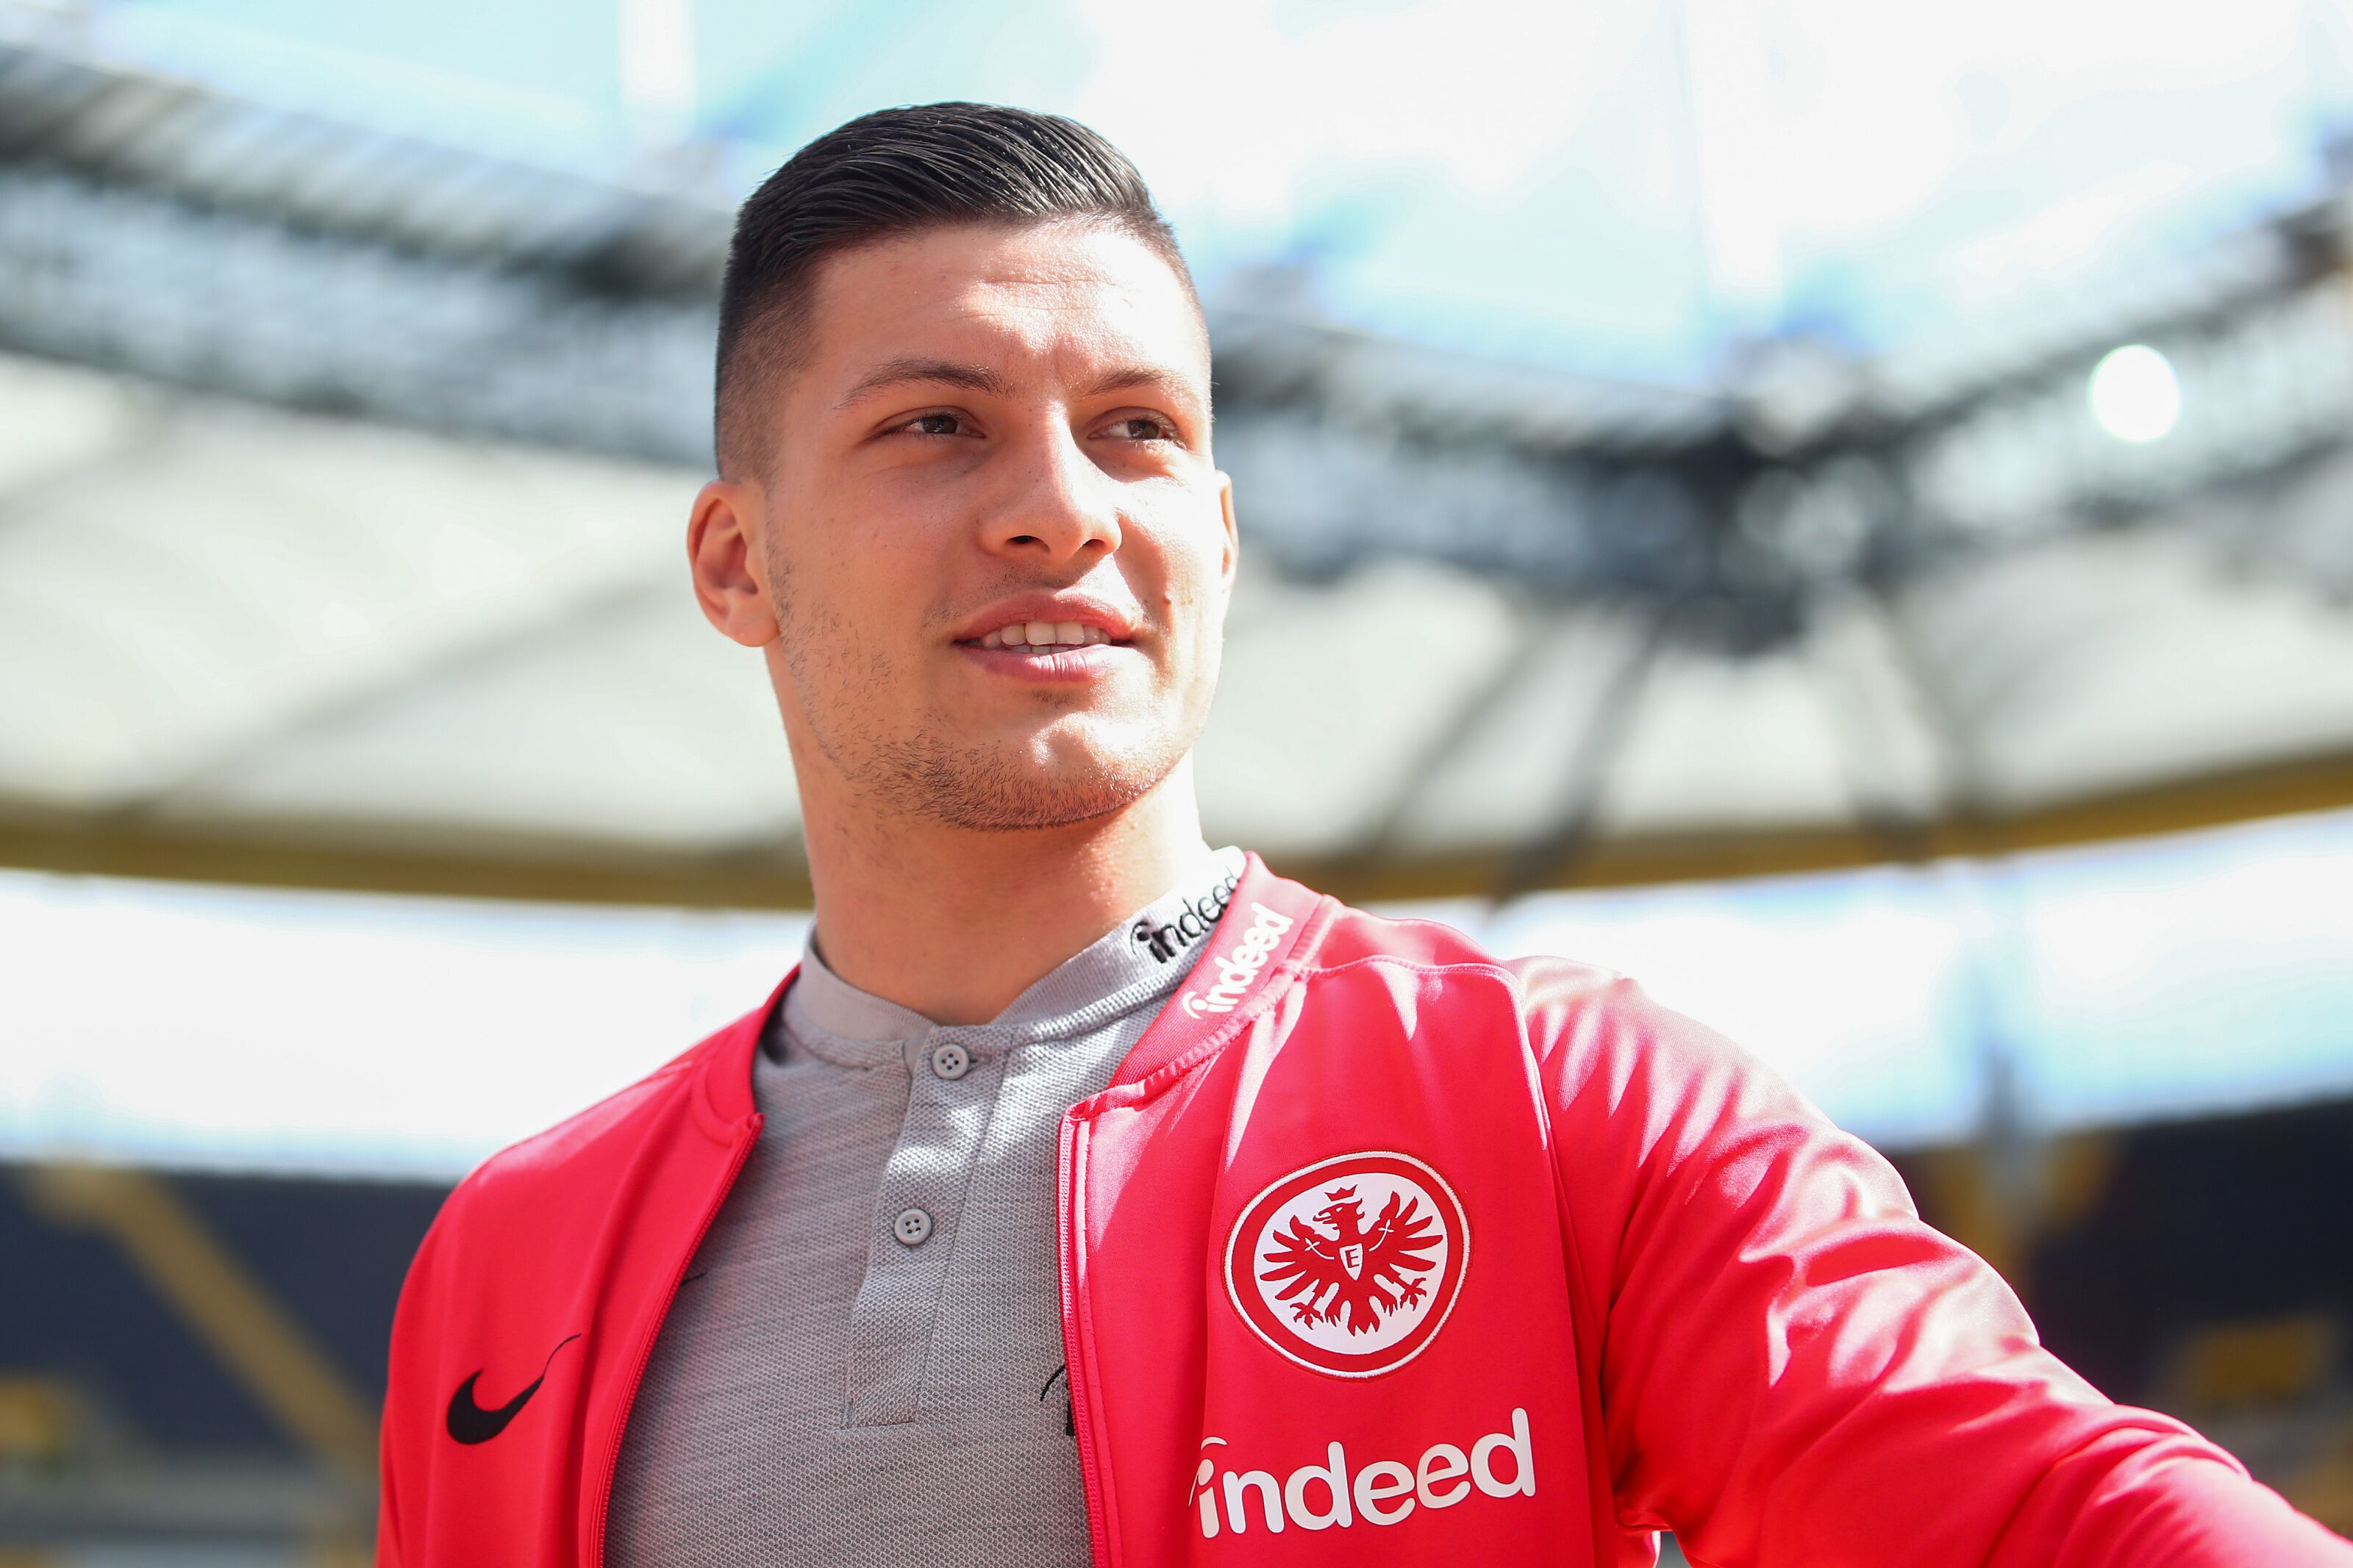 Real Madrid complete a move for in form striker Luka Jovic